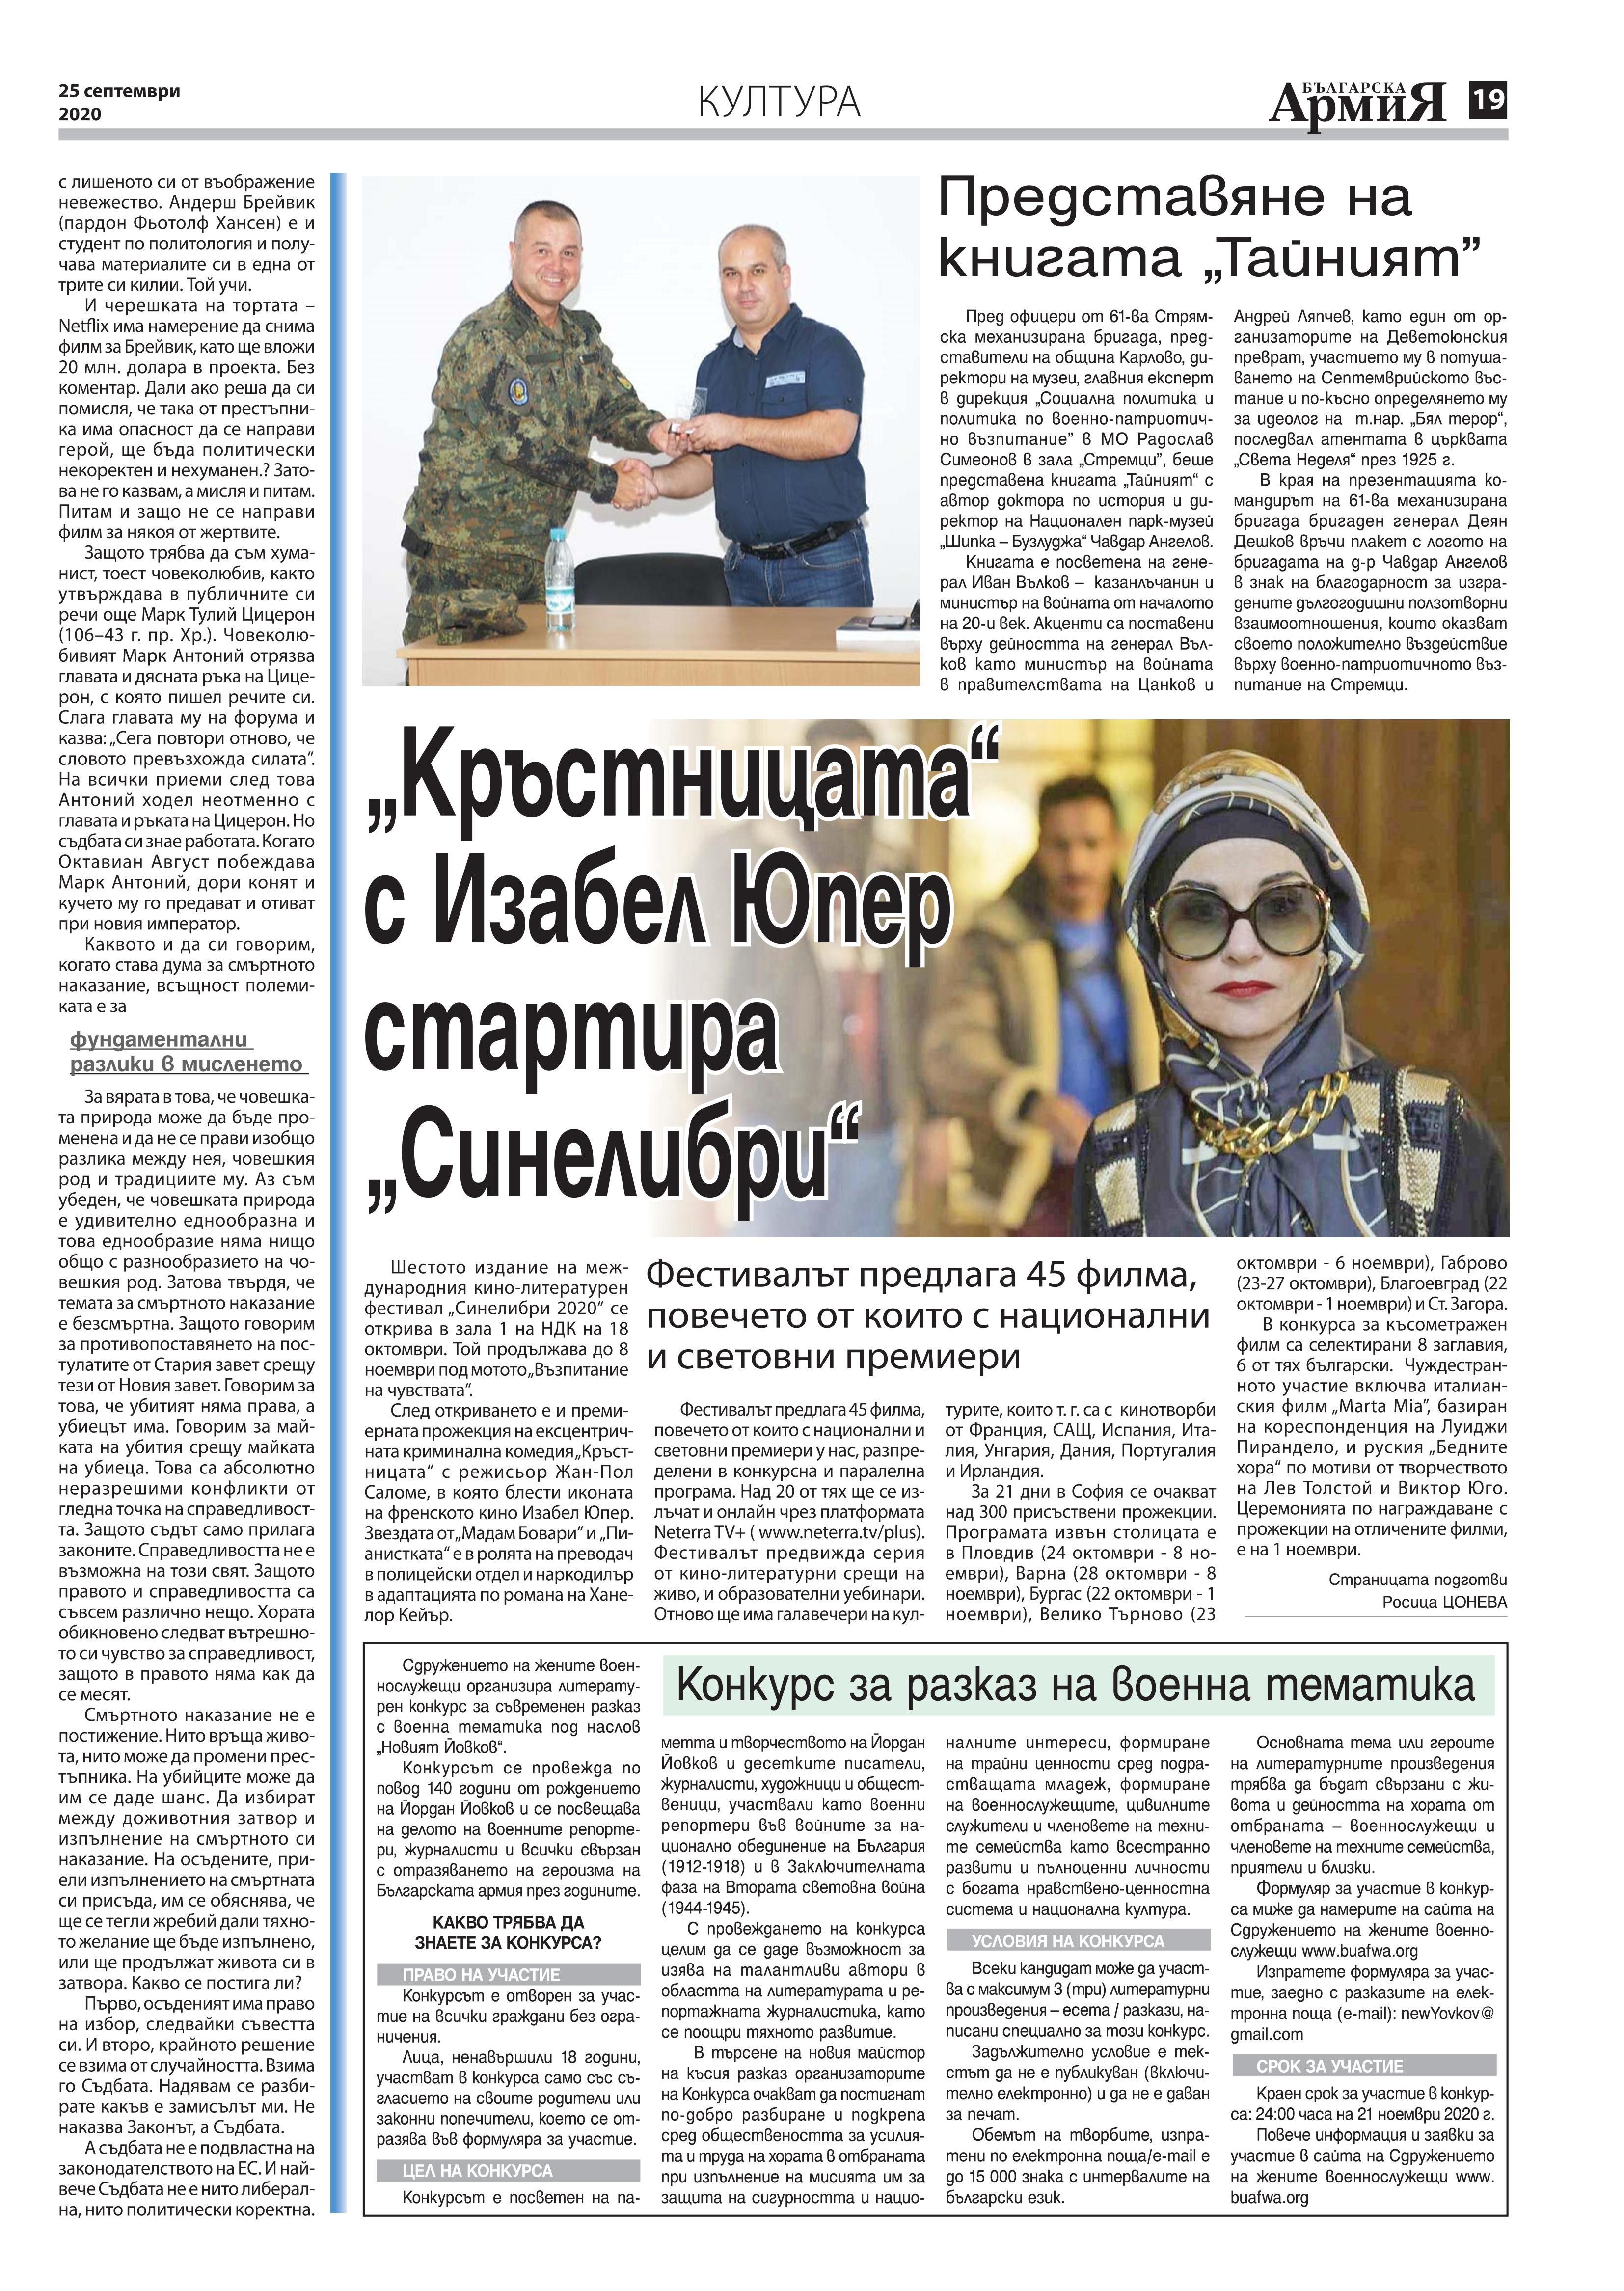 https://www.armymedia.bg/wp-content/uploads/2015/06/19.page1_-152.jpg